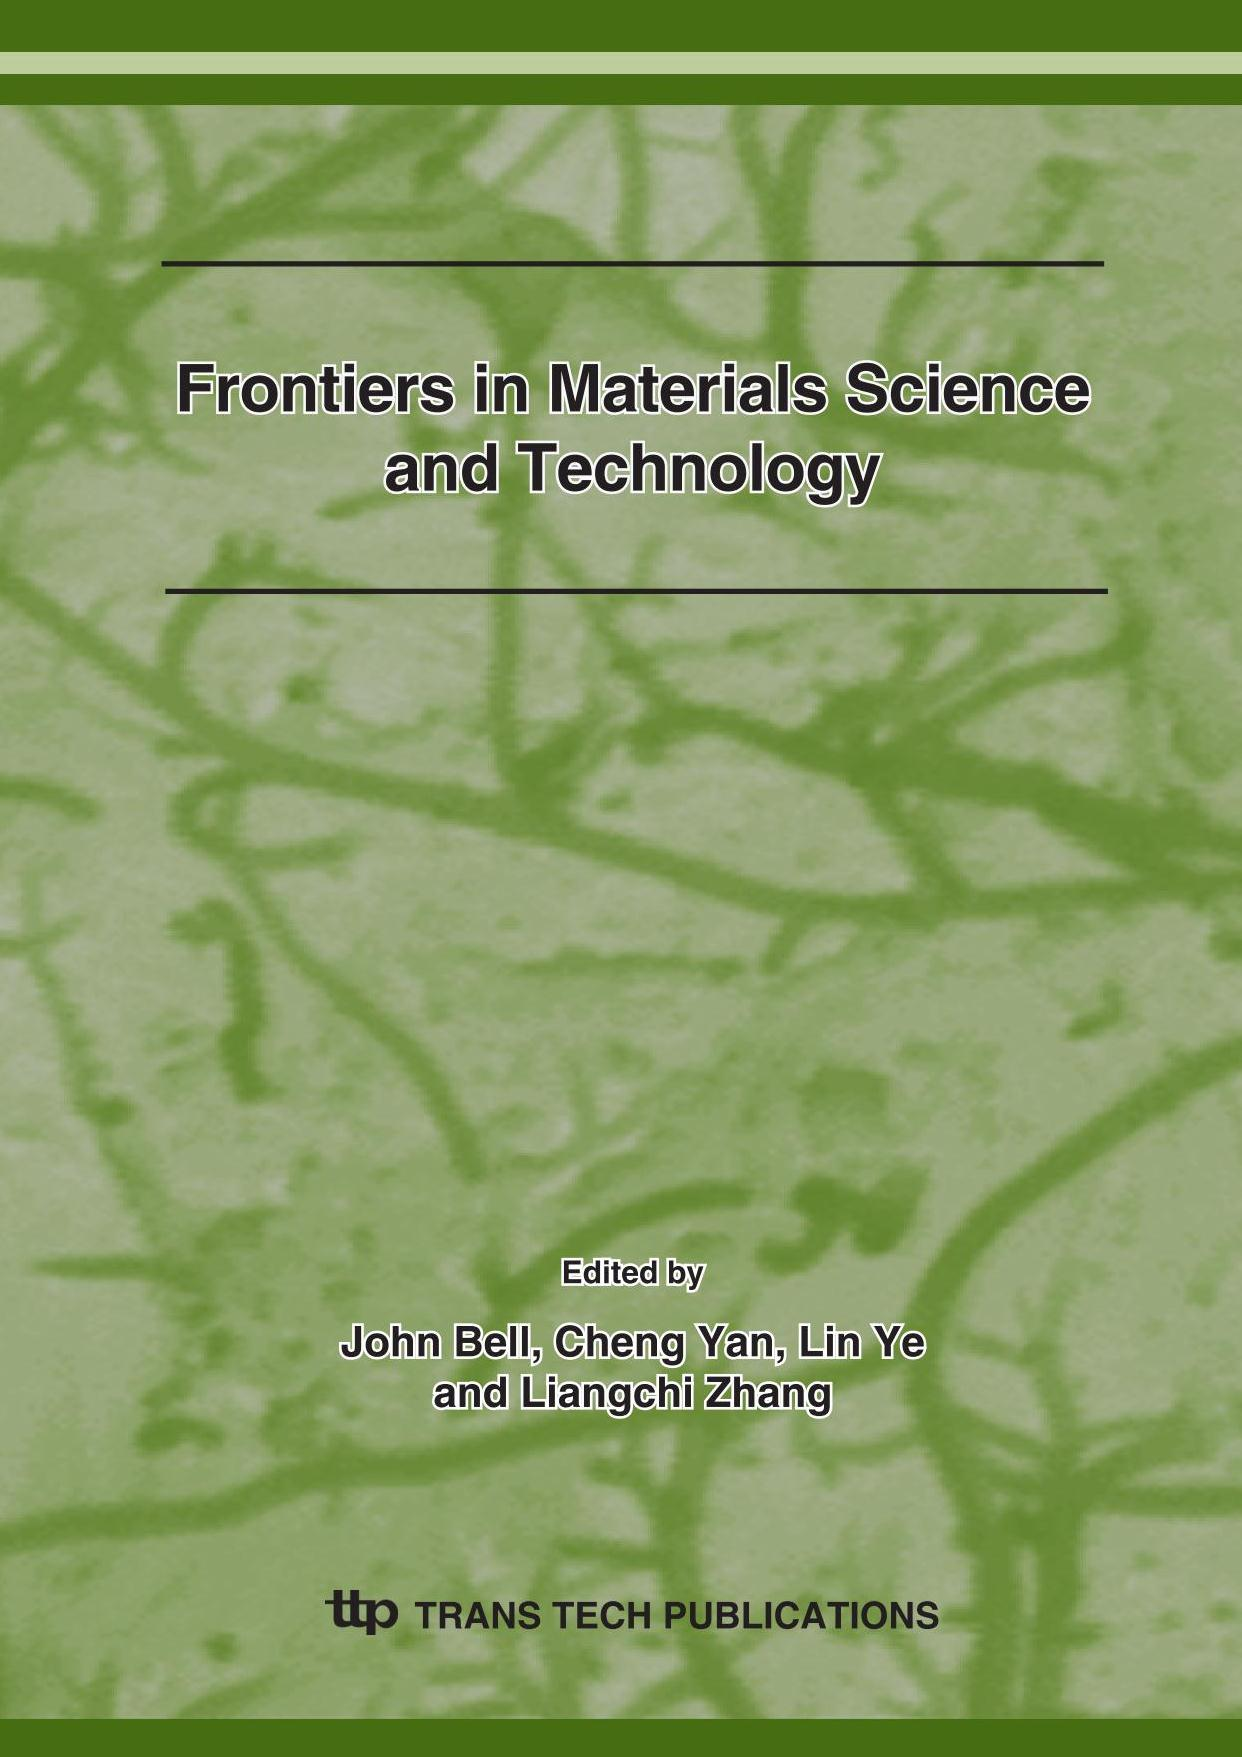 Frontiers in Materials Science and Technology